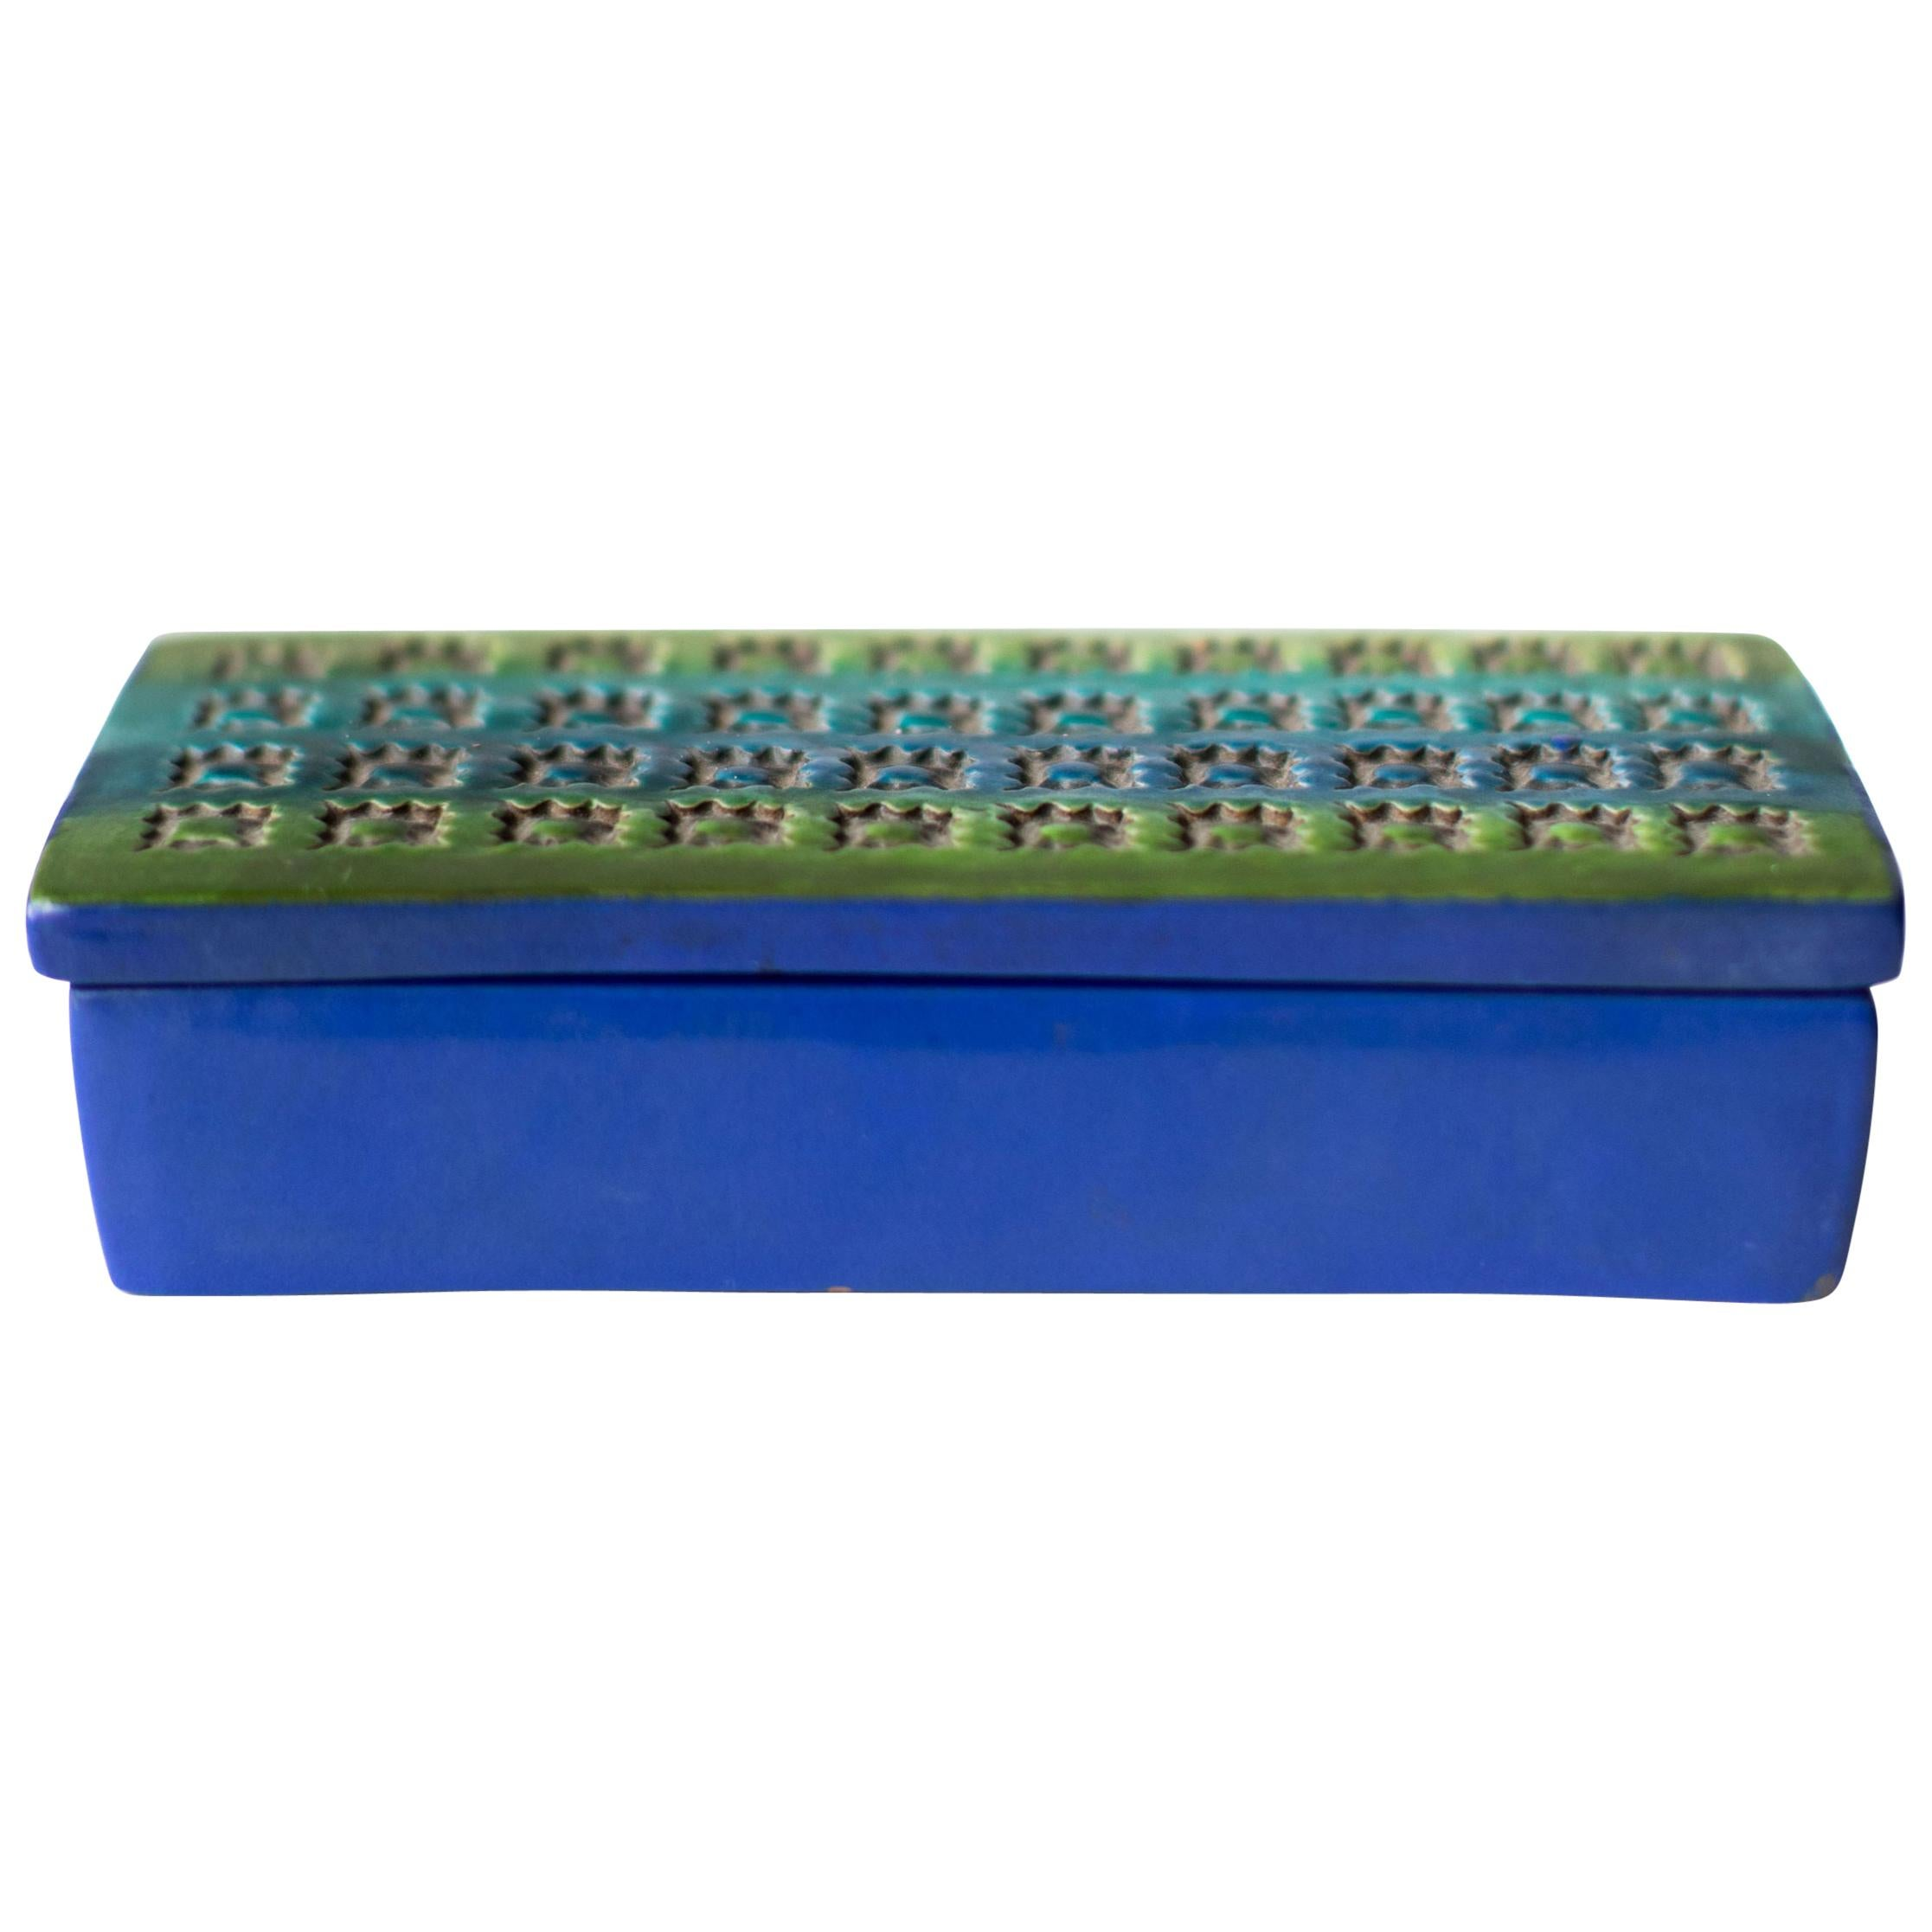 Bitossi Italian Pottery Box Imported by Rosenthal Netter